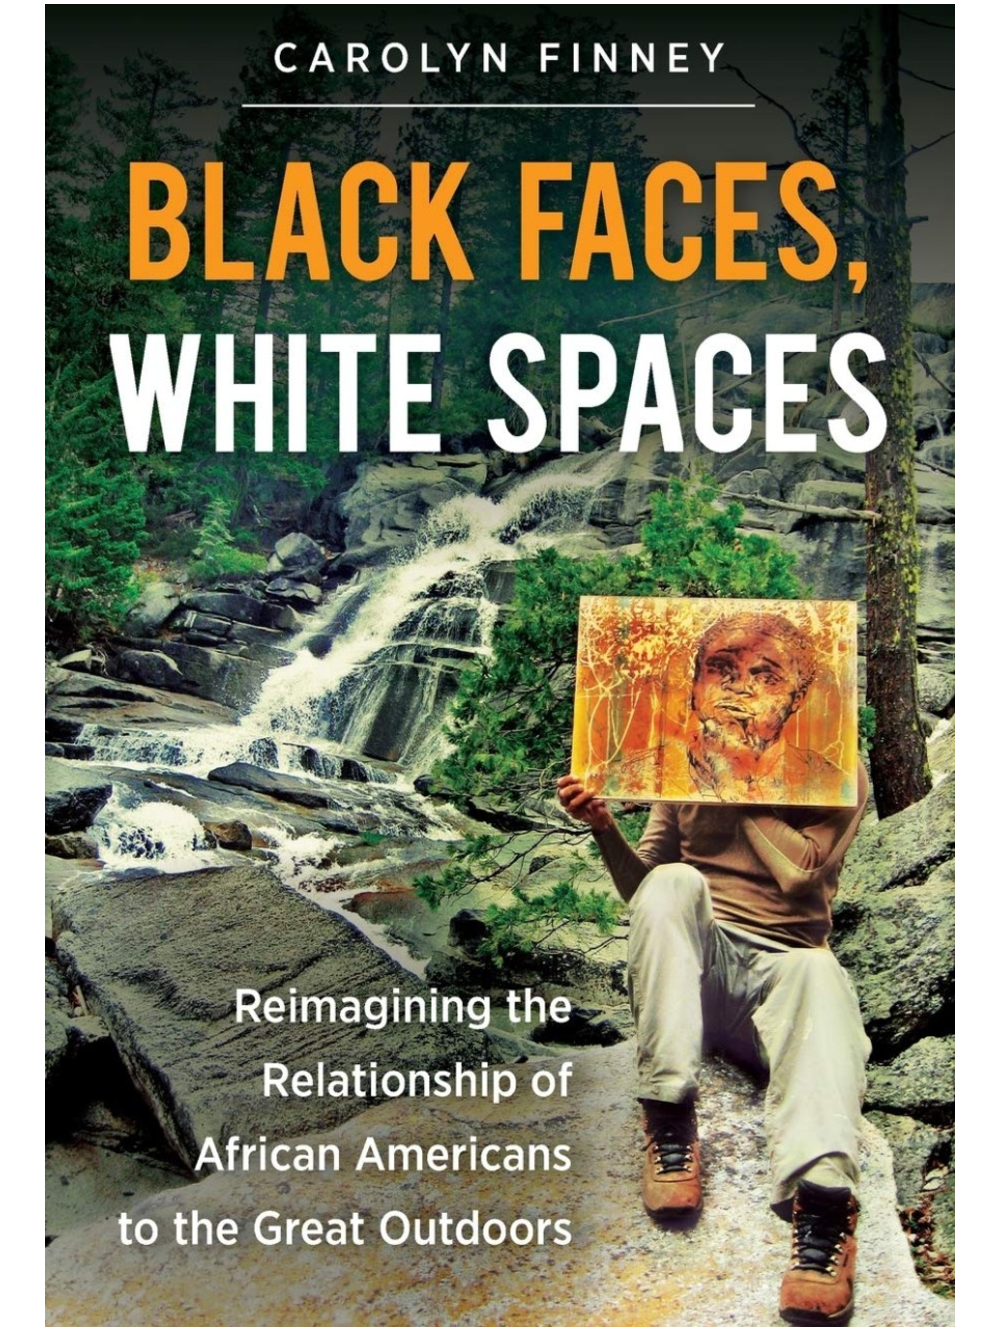 Book jacket featuring an African-American in an outdoor setting, holding a painting of his face in front of his face